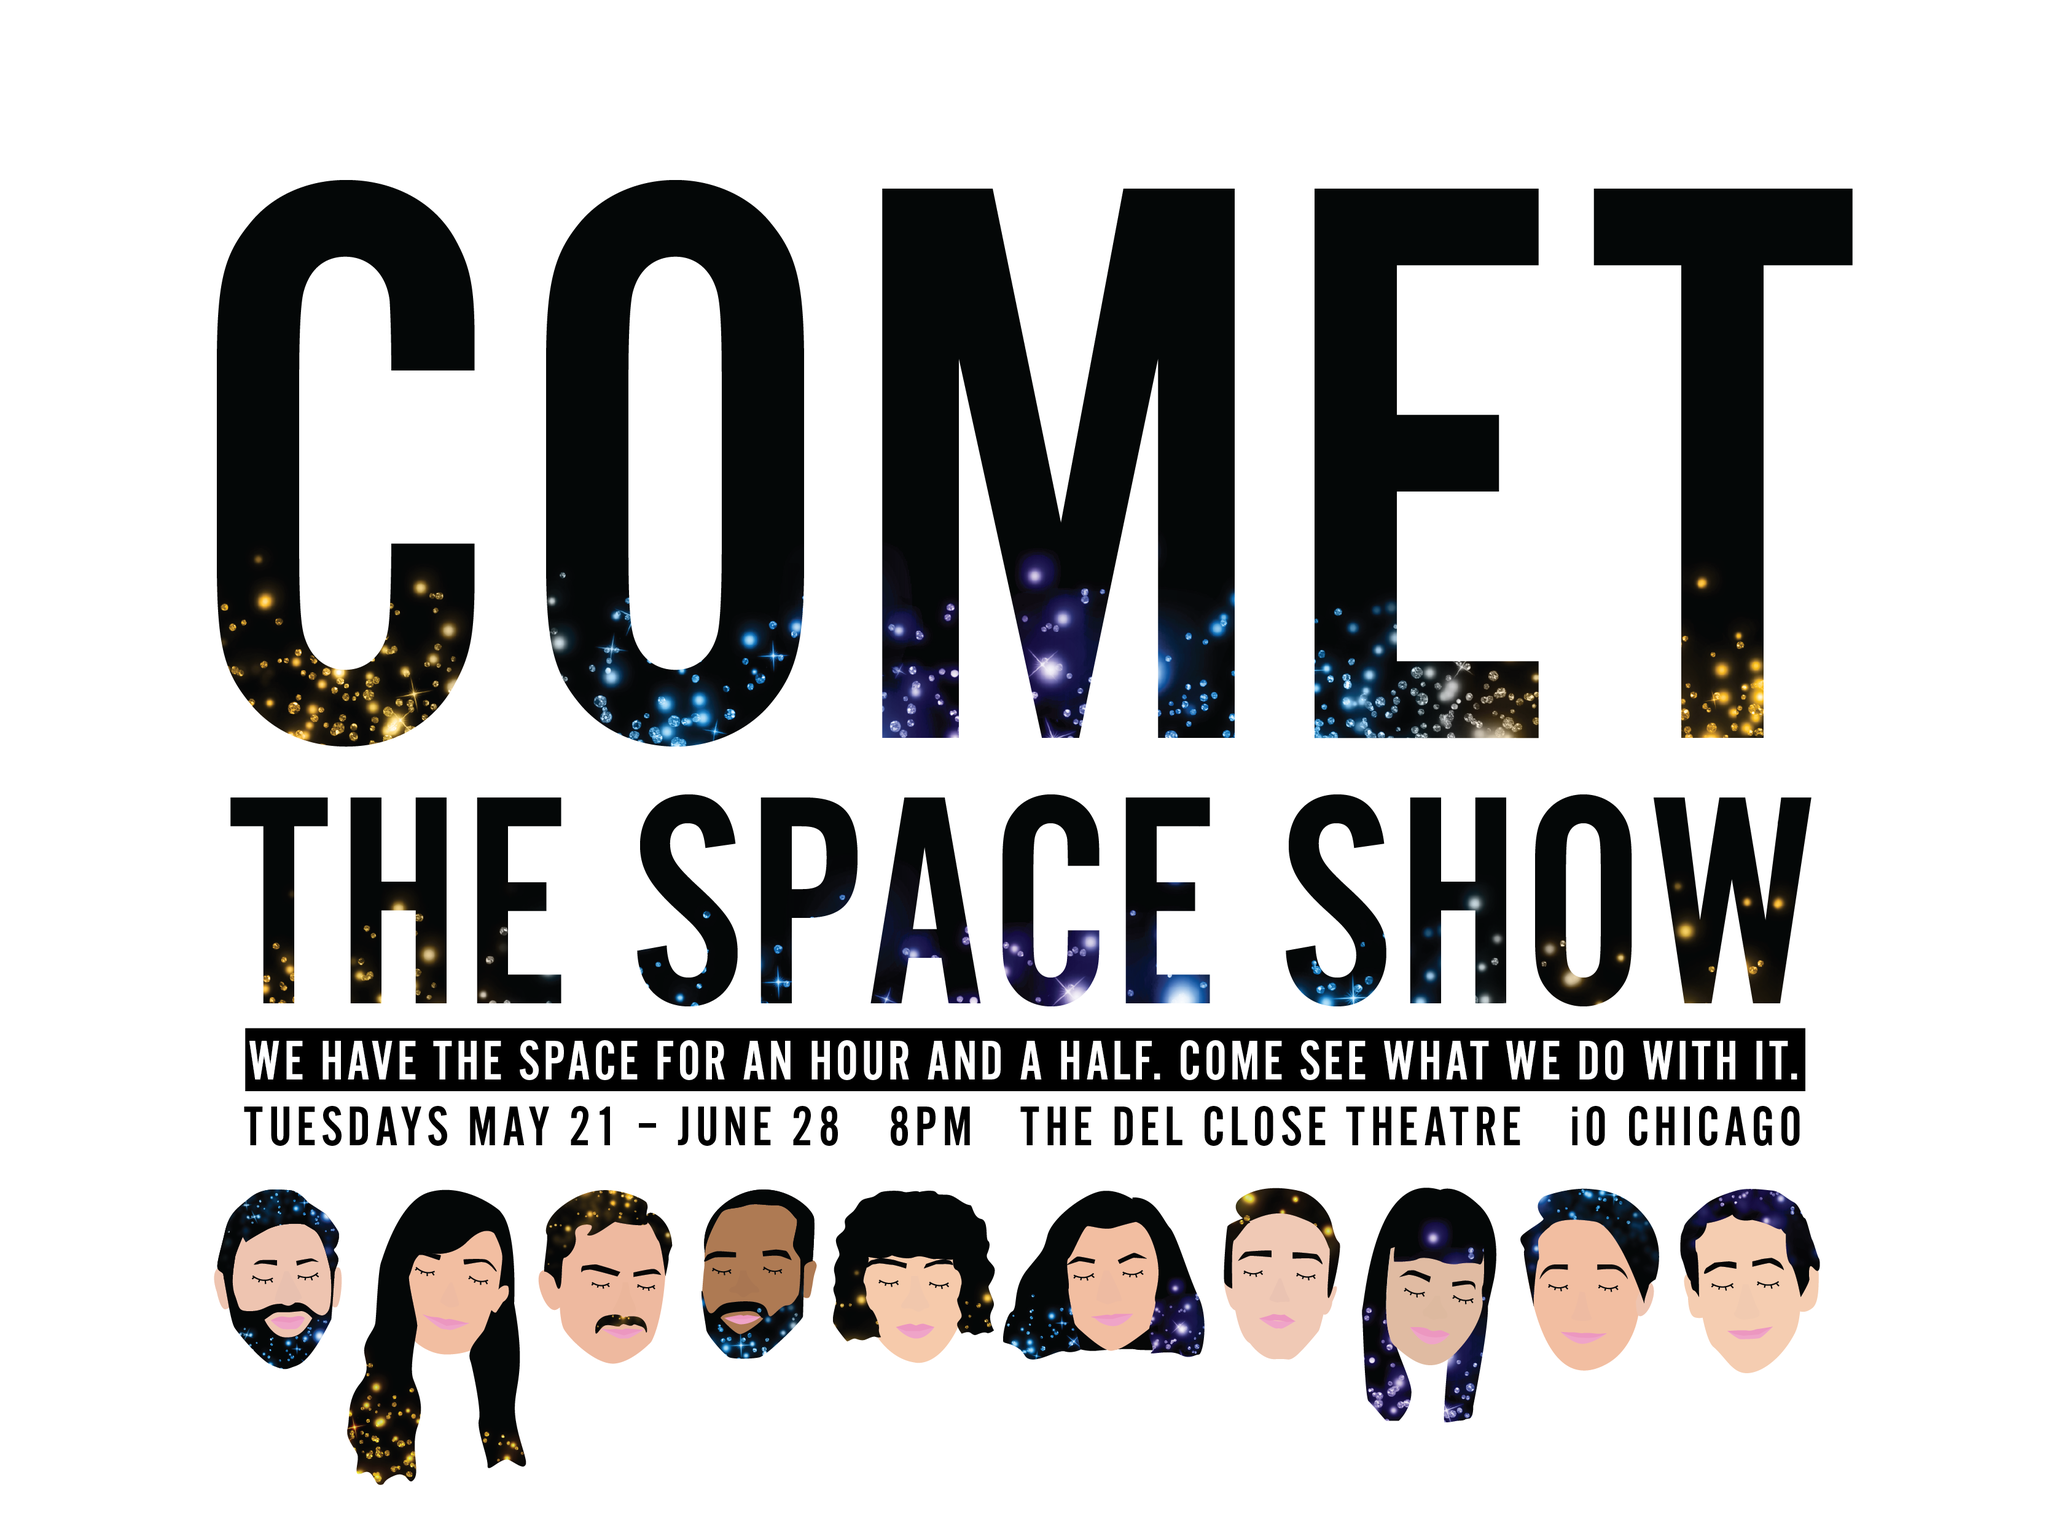 The Space Show with Comet, The Harold Team Nectar,  Vik Pandya